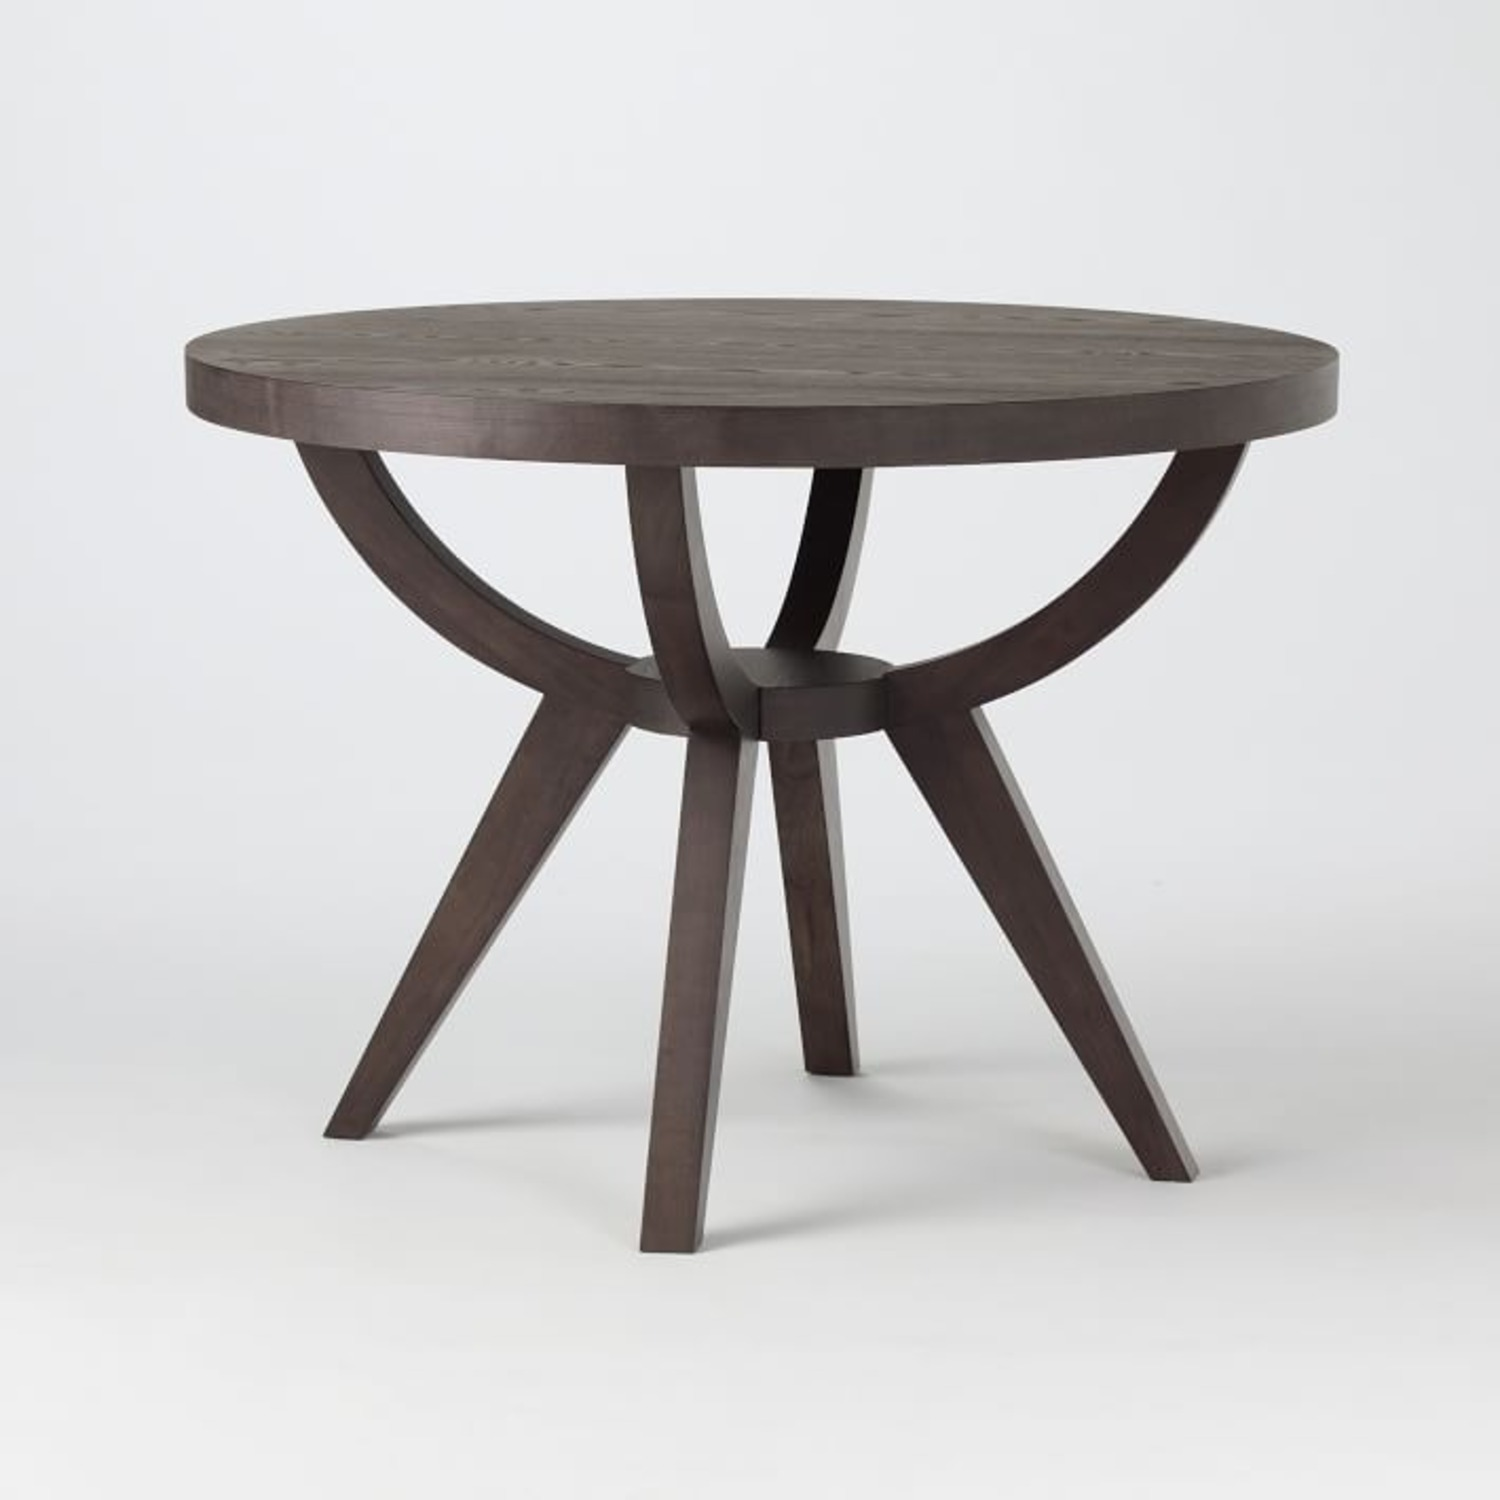 West Elm Arc Base Pedestal Table - image-1